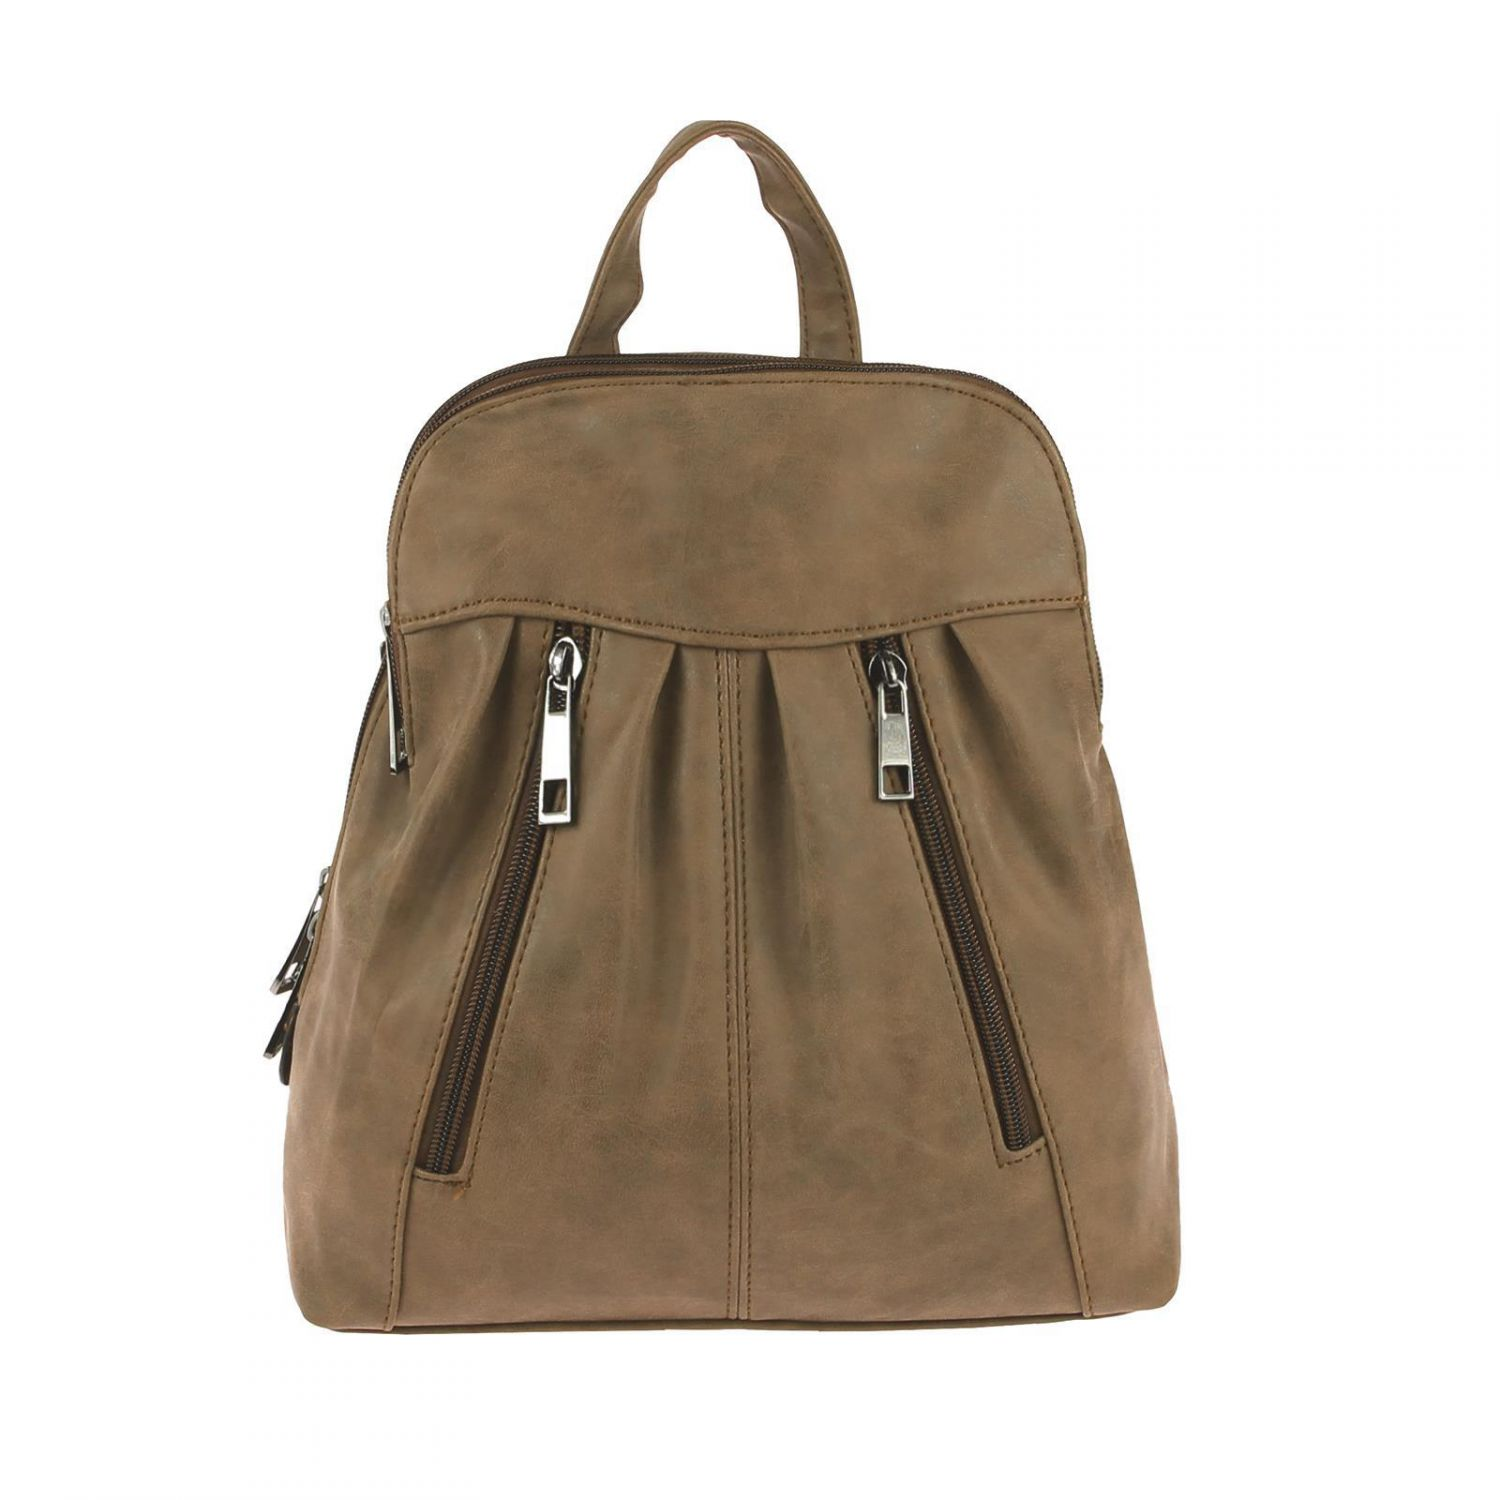 damen rucksack cityrucksack tasche stadtrucksack schultertasche backpack daypack ebay. Black Bedroom Furniture Sets. Home Design Ideas